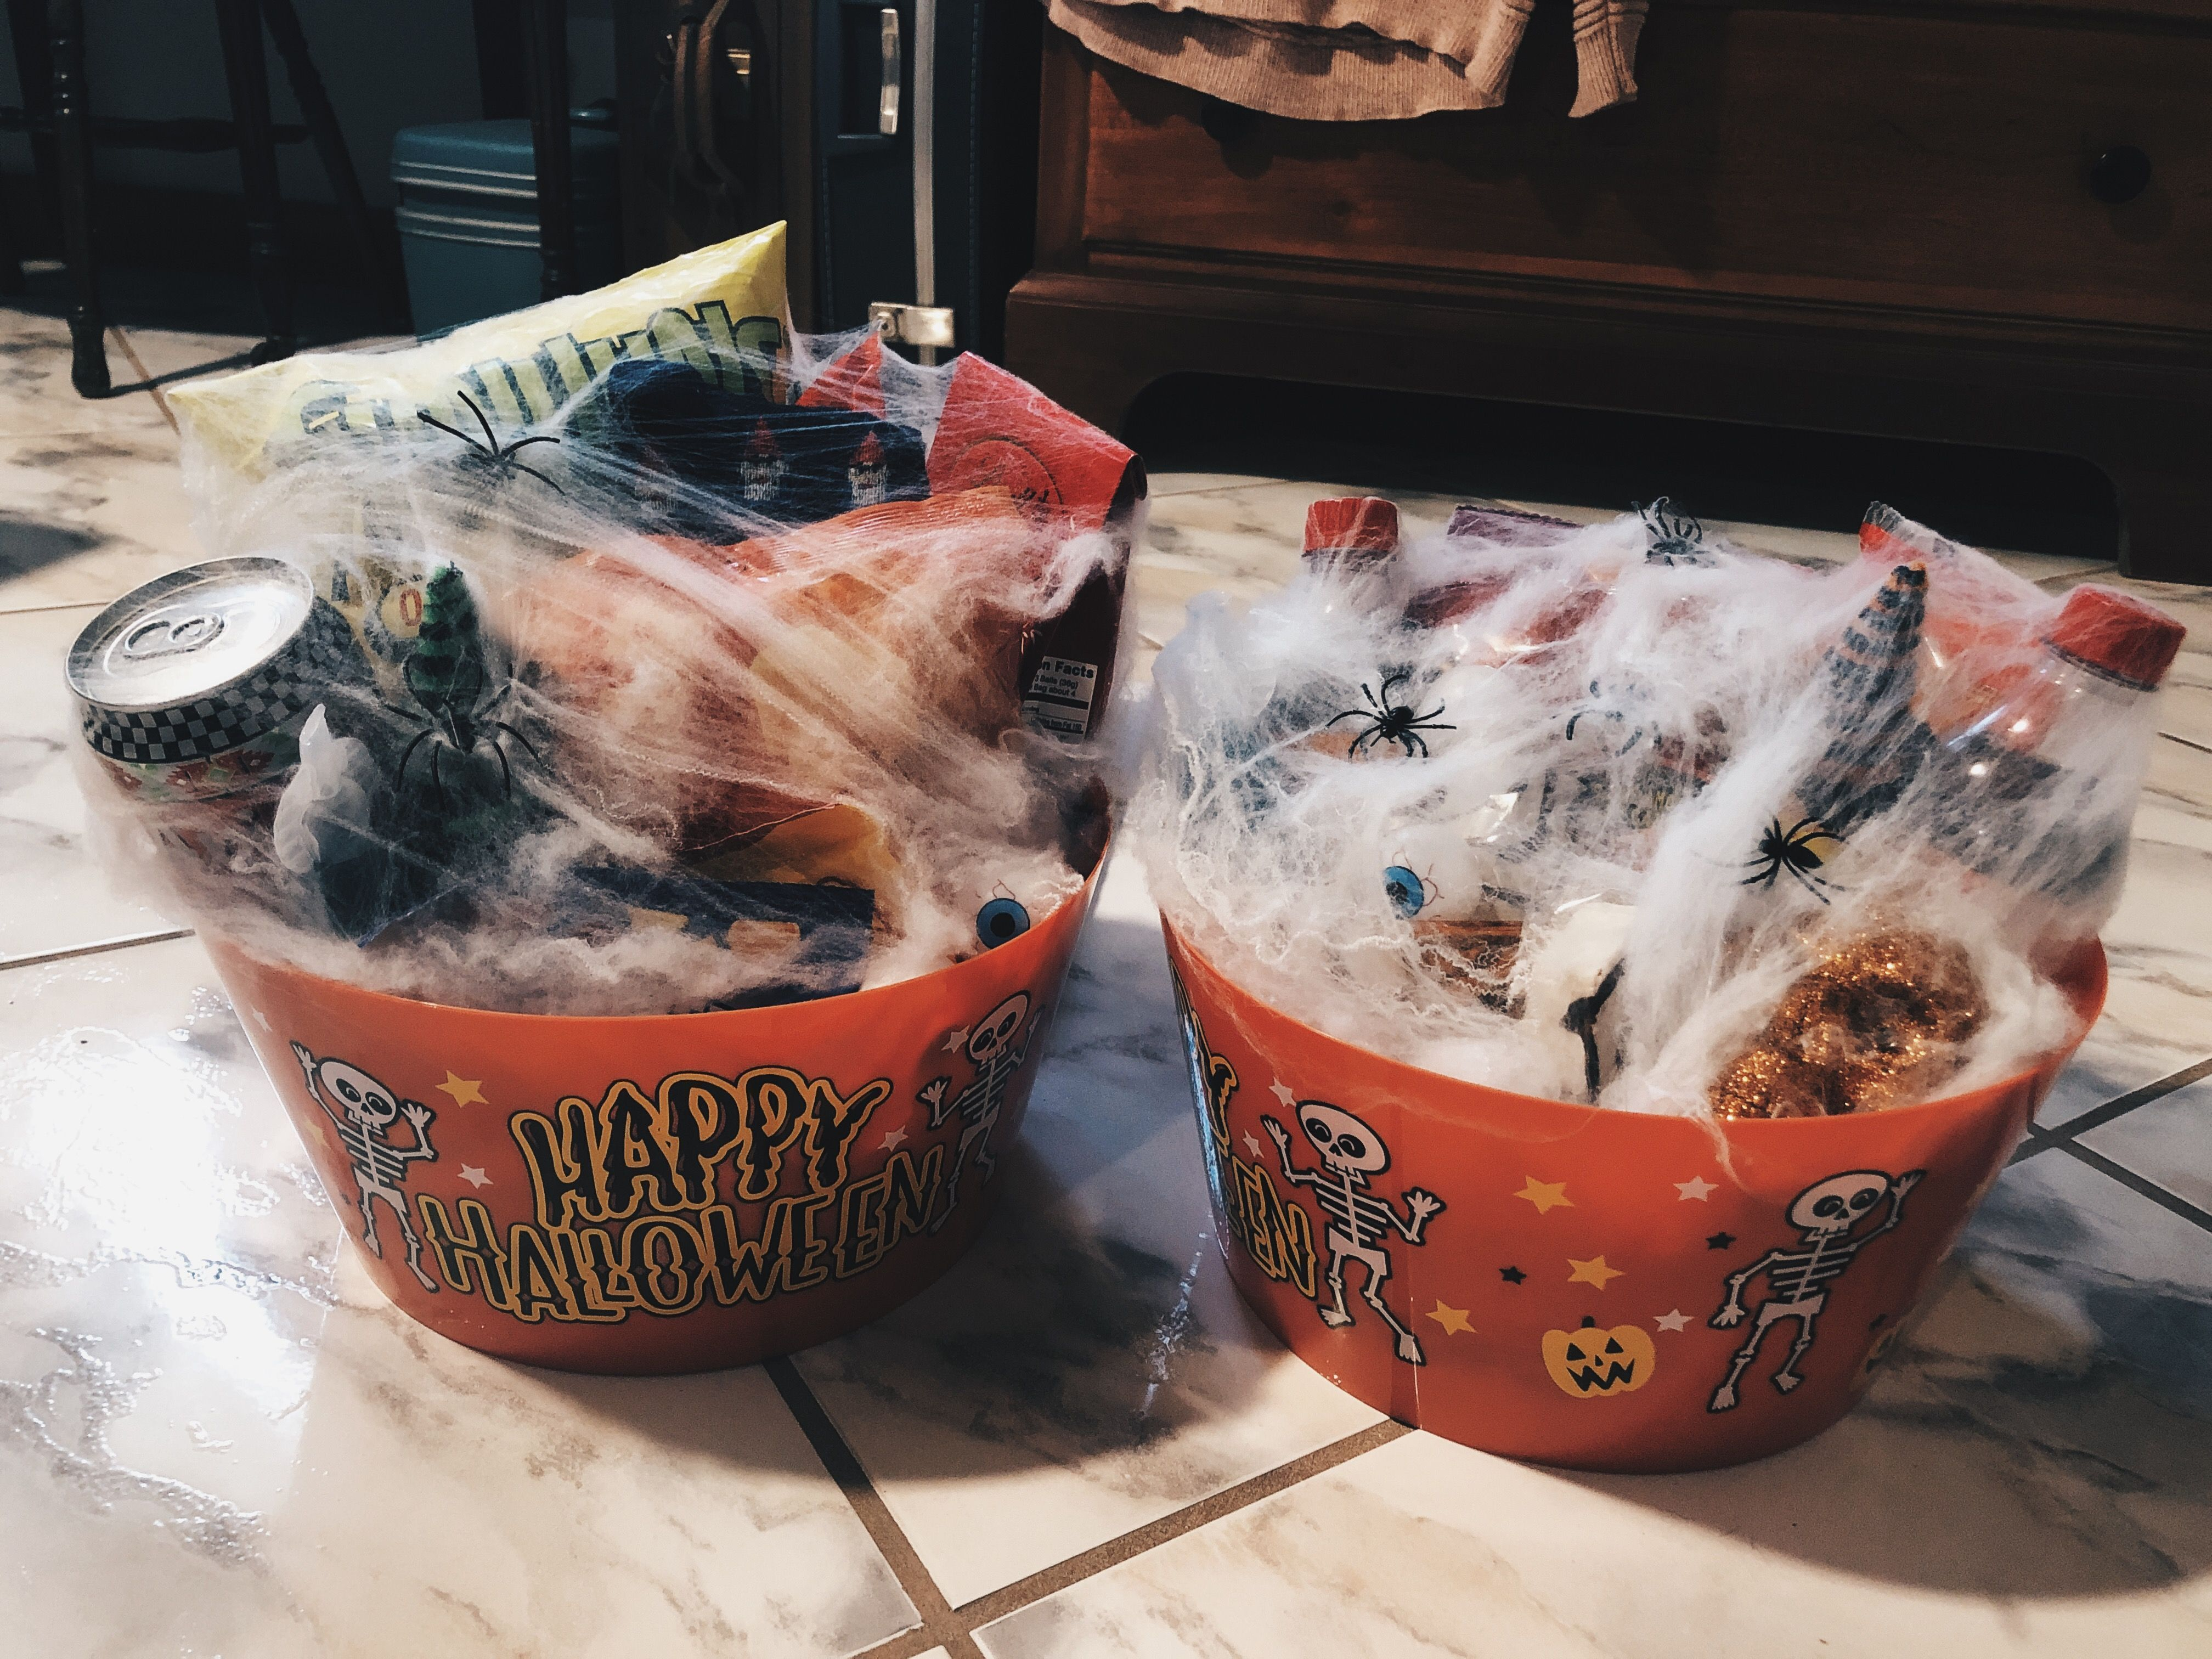 One for my boo and one for my cousin  #spookybasket Spooky Basket!! #spookybasketideas One for my boo and one for my cousin  #spookybasket Spooky Basket!! #spookybasket One for my boo and one for my cousin  #spookybasket Spooky Basket!! #spookybasketideas One for my boo and one for my cousin  #spookybasket Spooky Basket!! #spookybasket